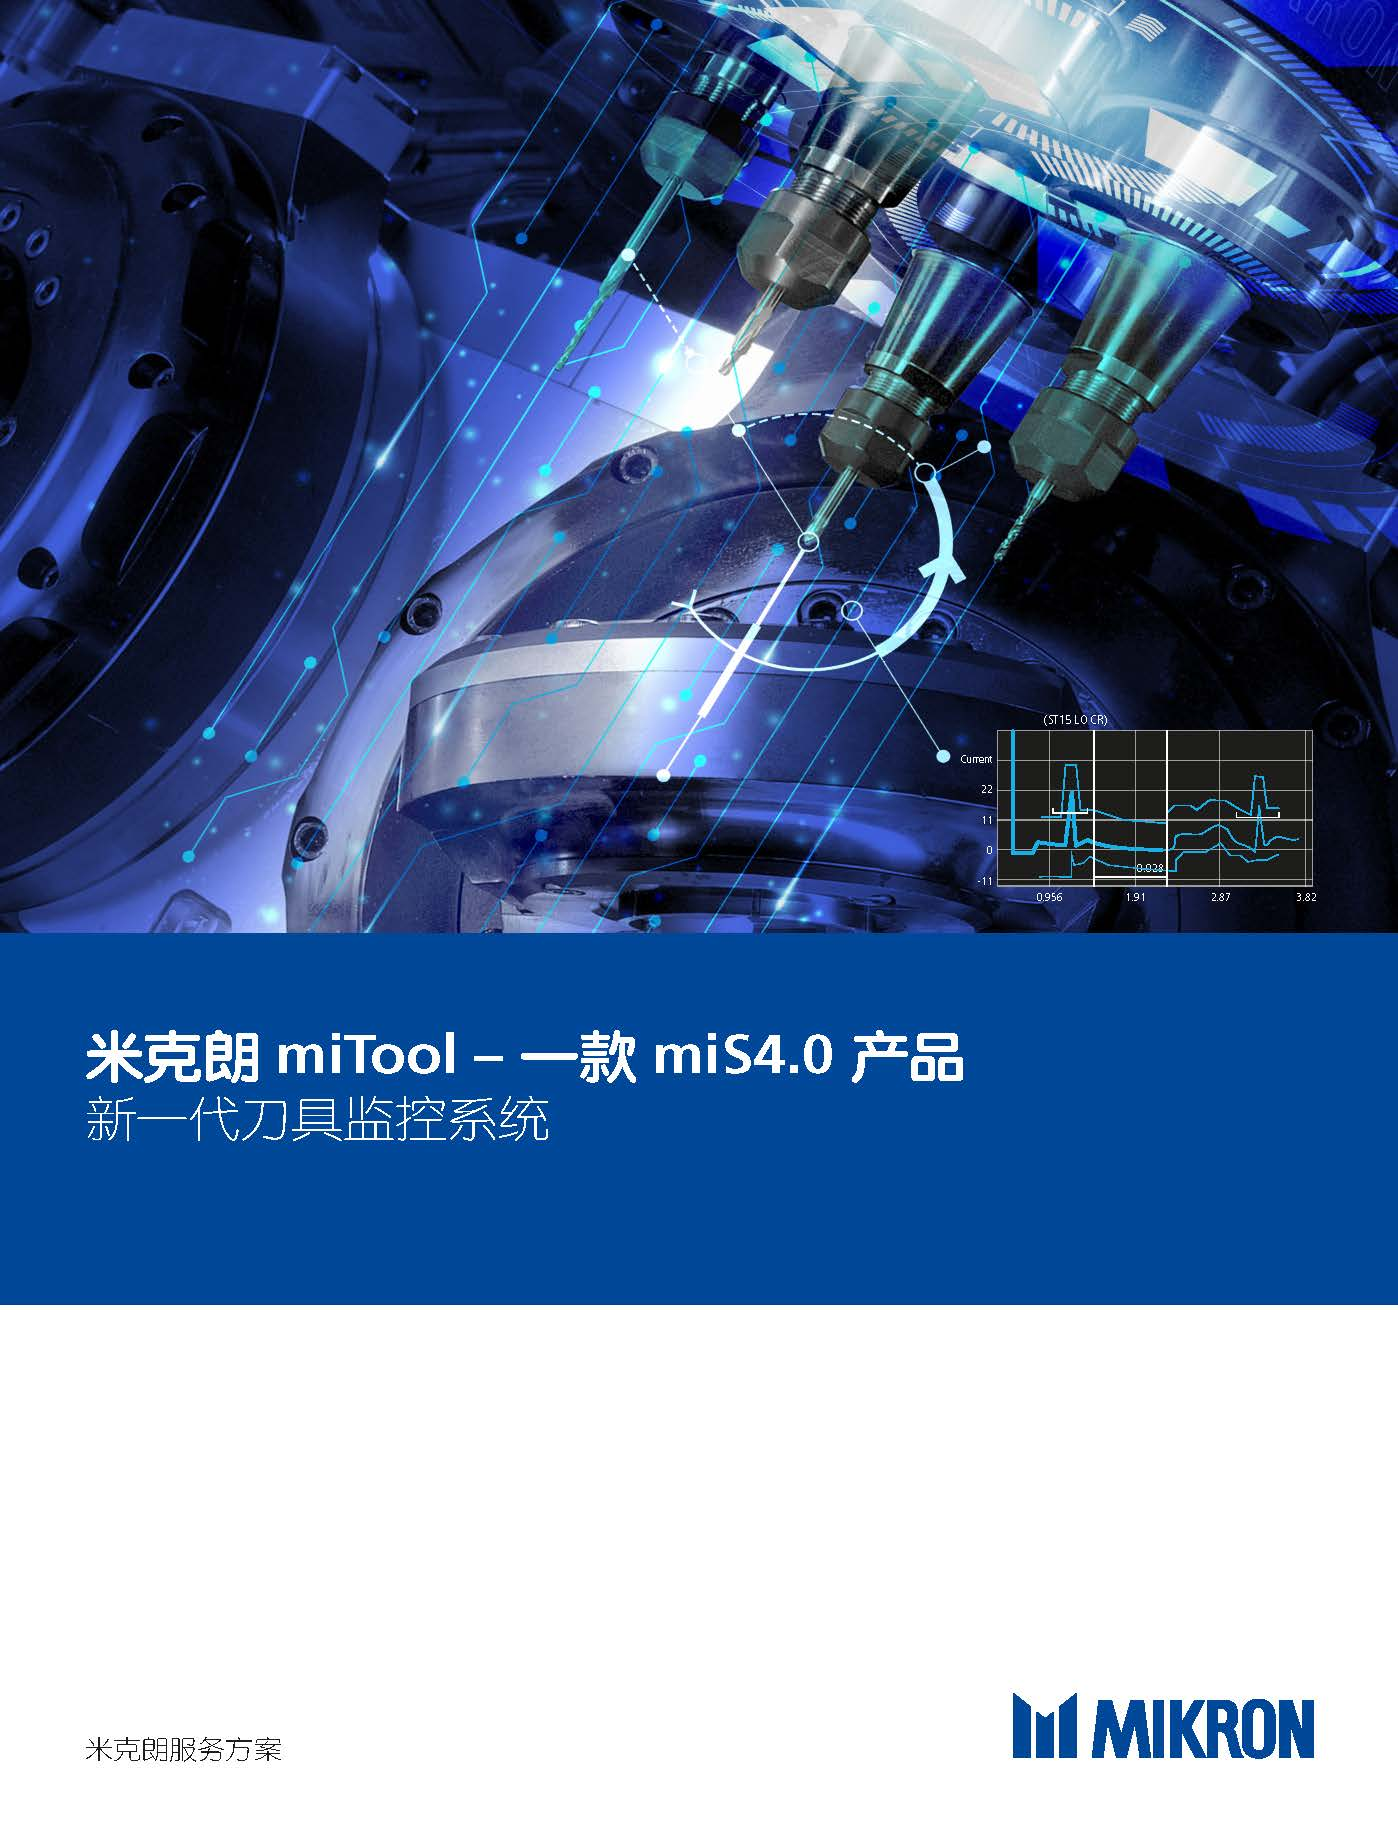 fileadmin/user_upload/200928_Mikron_MIS_miTool_brochure_case_history_web_CN_Seite_1.jpg